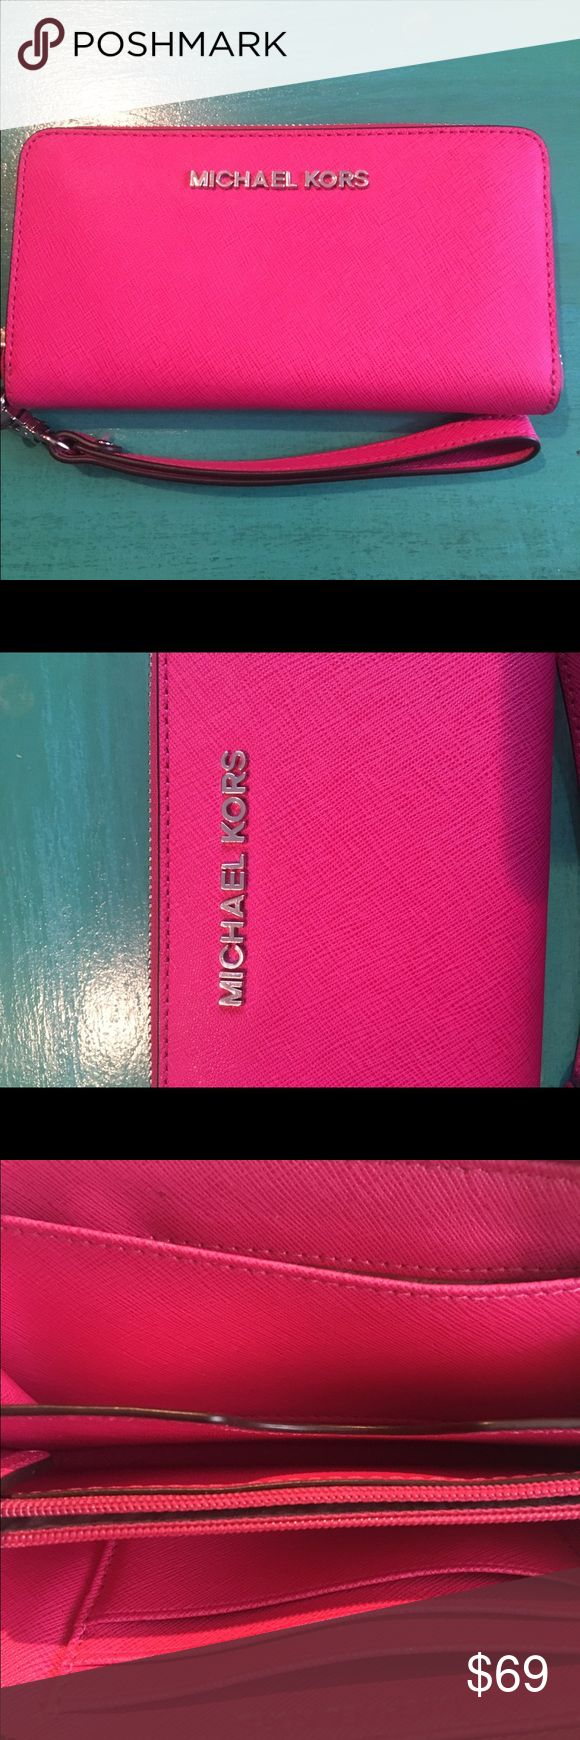 Michael Kors Jetset Small Wristlet. Brand New! Michael Kors Jetset Wristlet! Brand New, Never Used, No tags. Beautiful bright Raspberry color perfect for spring. This is a smaller sized Wristlet but should fit most smartphones! Purchased this year 2017 from Nordstrom. Michael Kors Bags Clutches & Wristlets